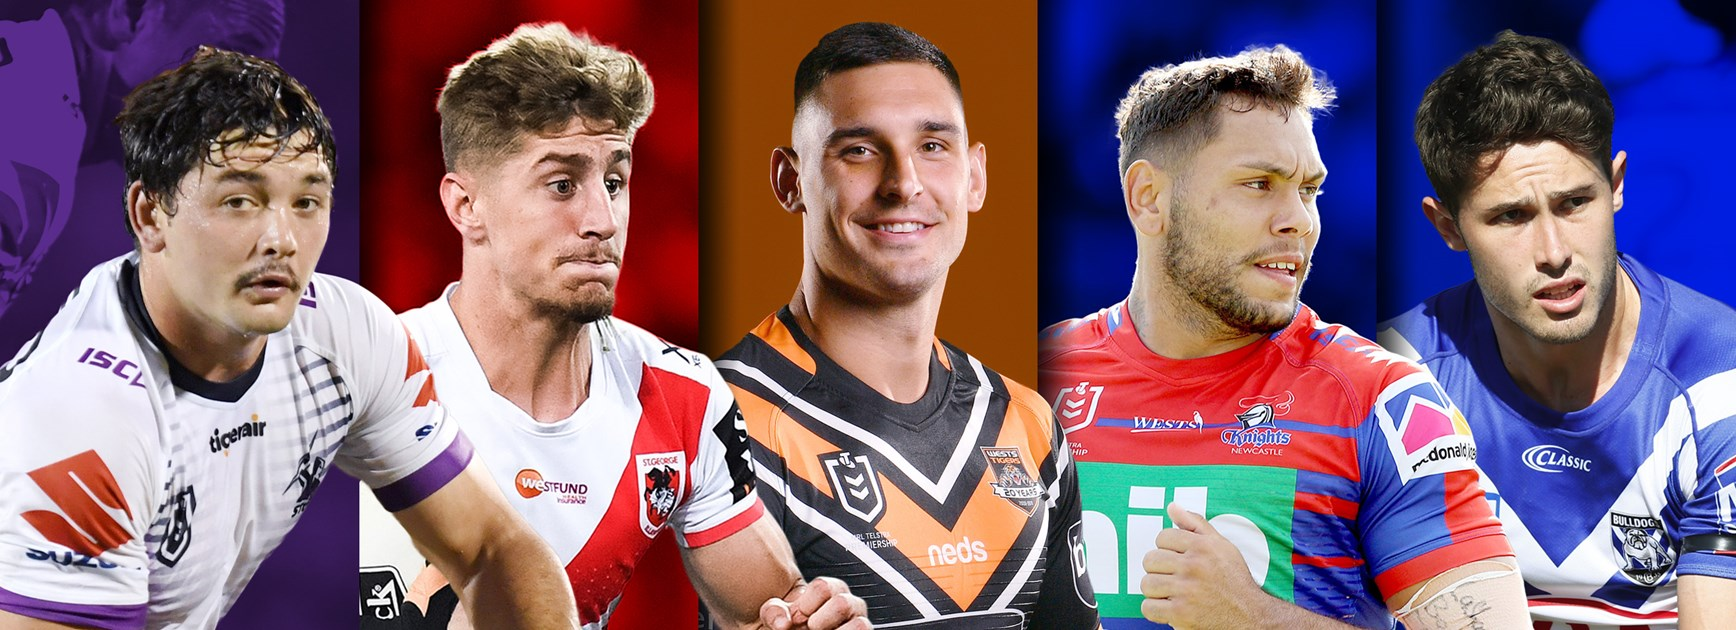 Soward: Five breakout players to watch in 2019